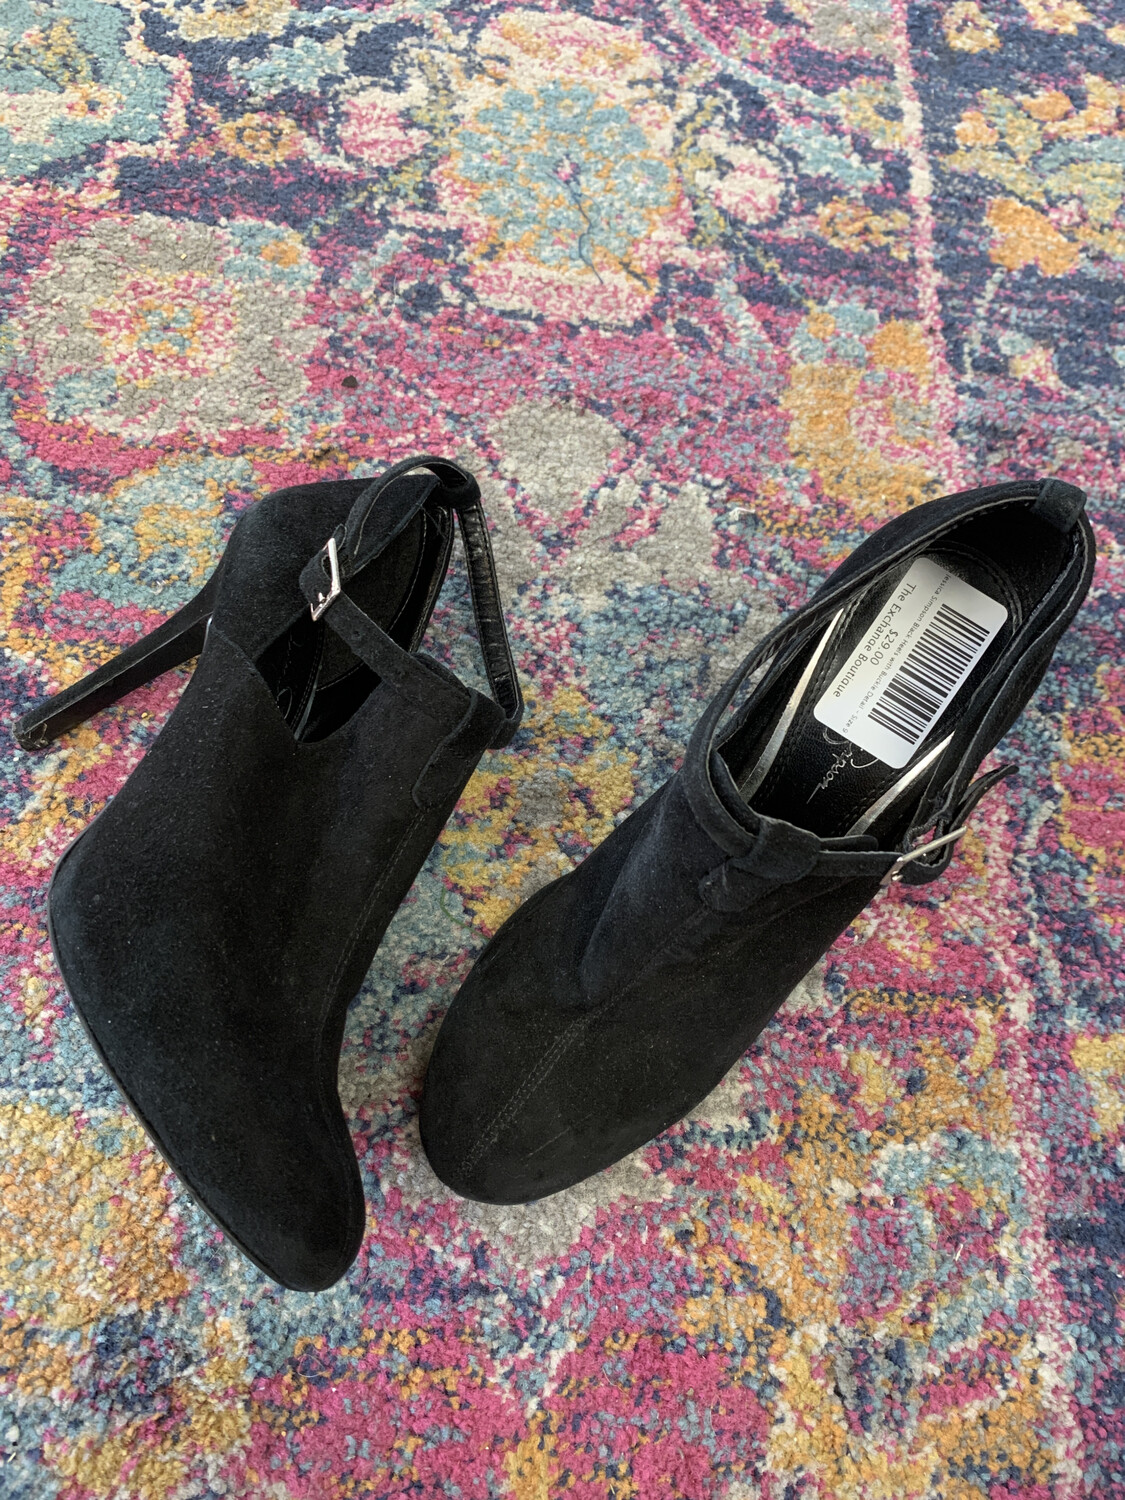 Jessica Simpson Black Heels with Buckle Detail - Size 9